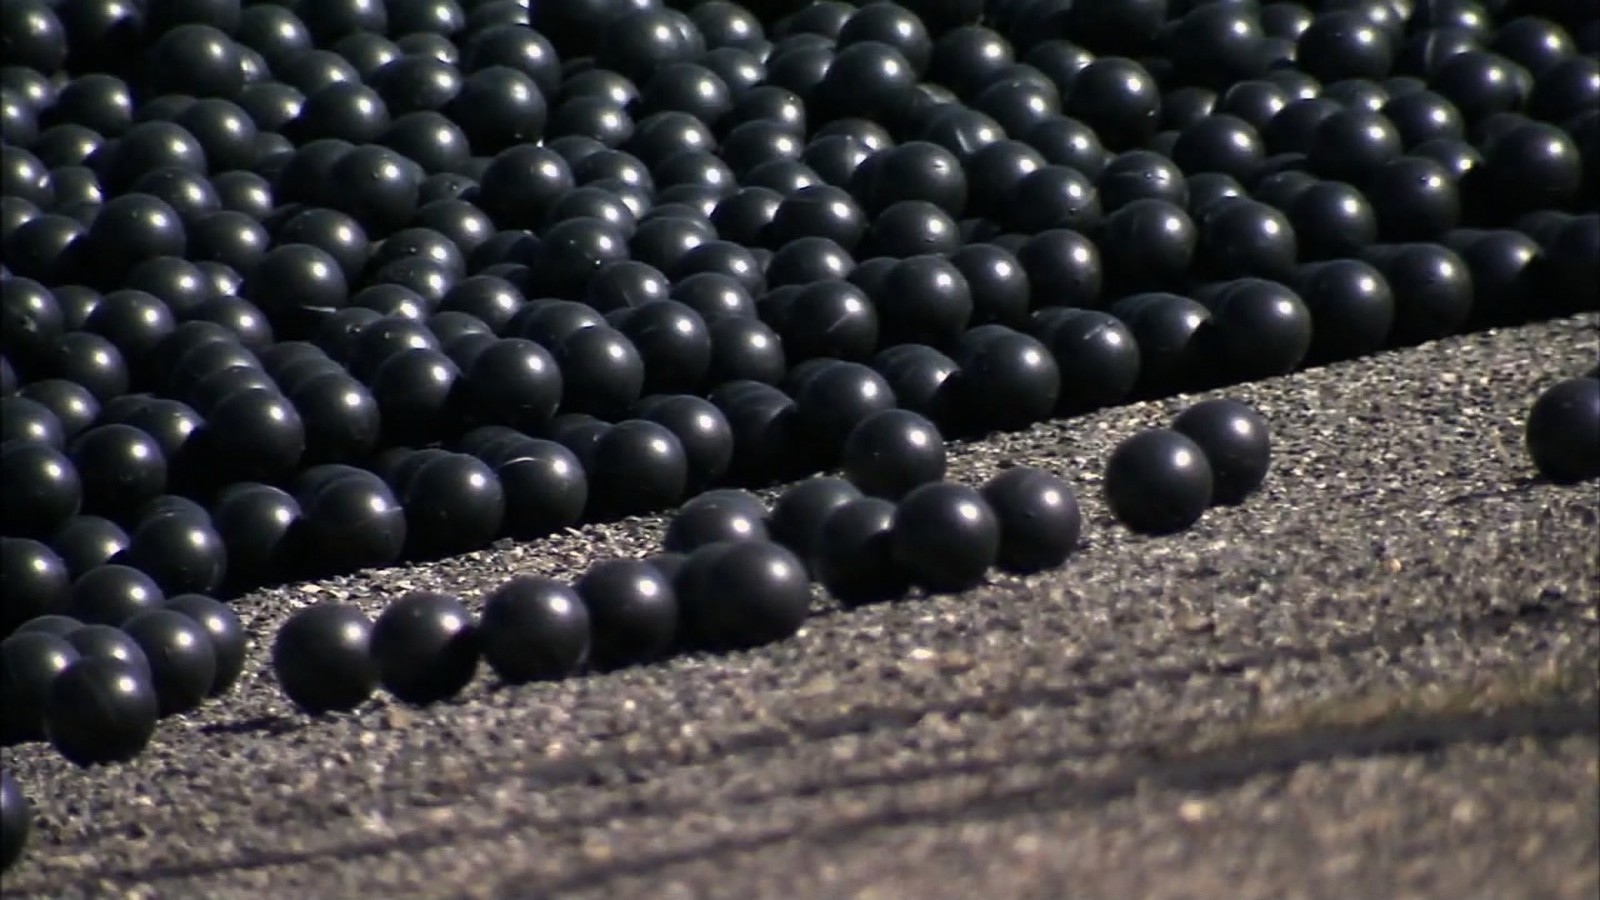 Shade balls used to conserve water in los angeles cnn video